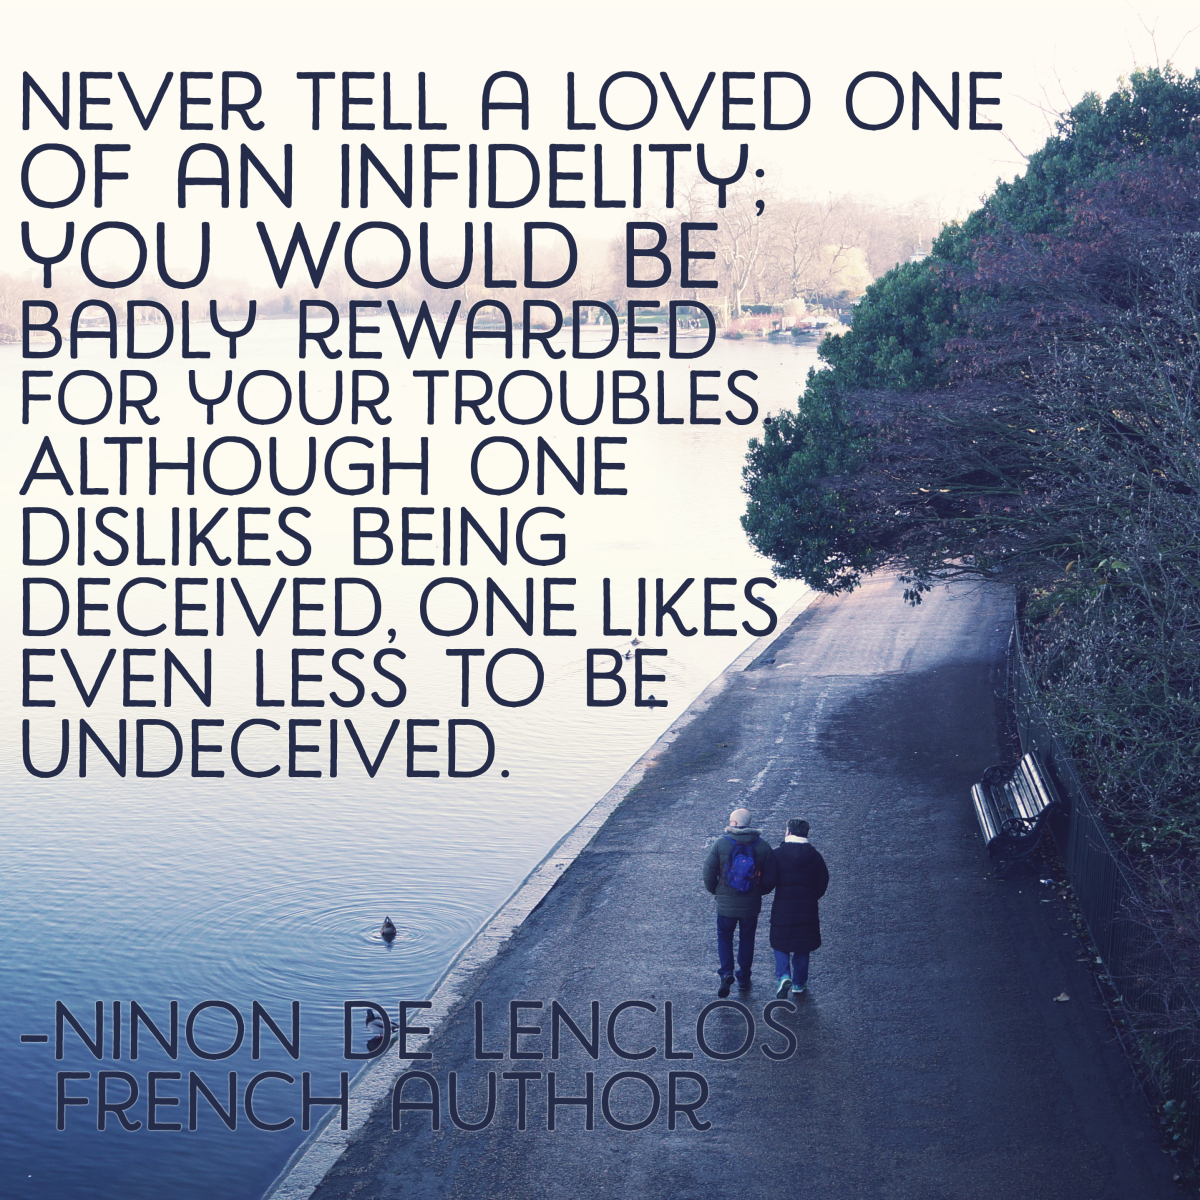 """Never tell a loved one of an infidelity: you would be badly rewarded for your troubles. Although one dislikes being deceived, one likes even less to be undeceived."" - Ninon De Lenclos, French author"